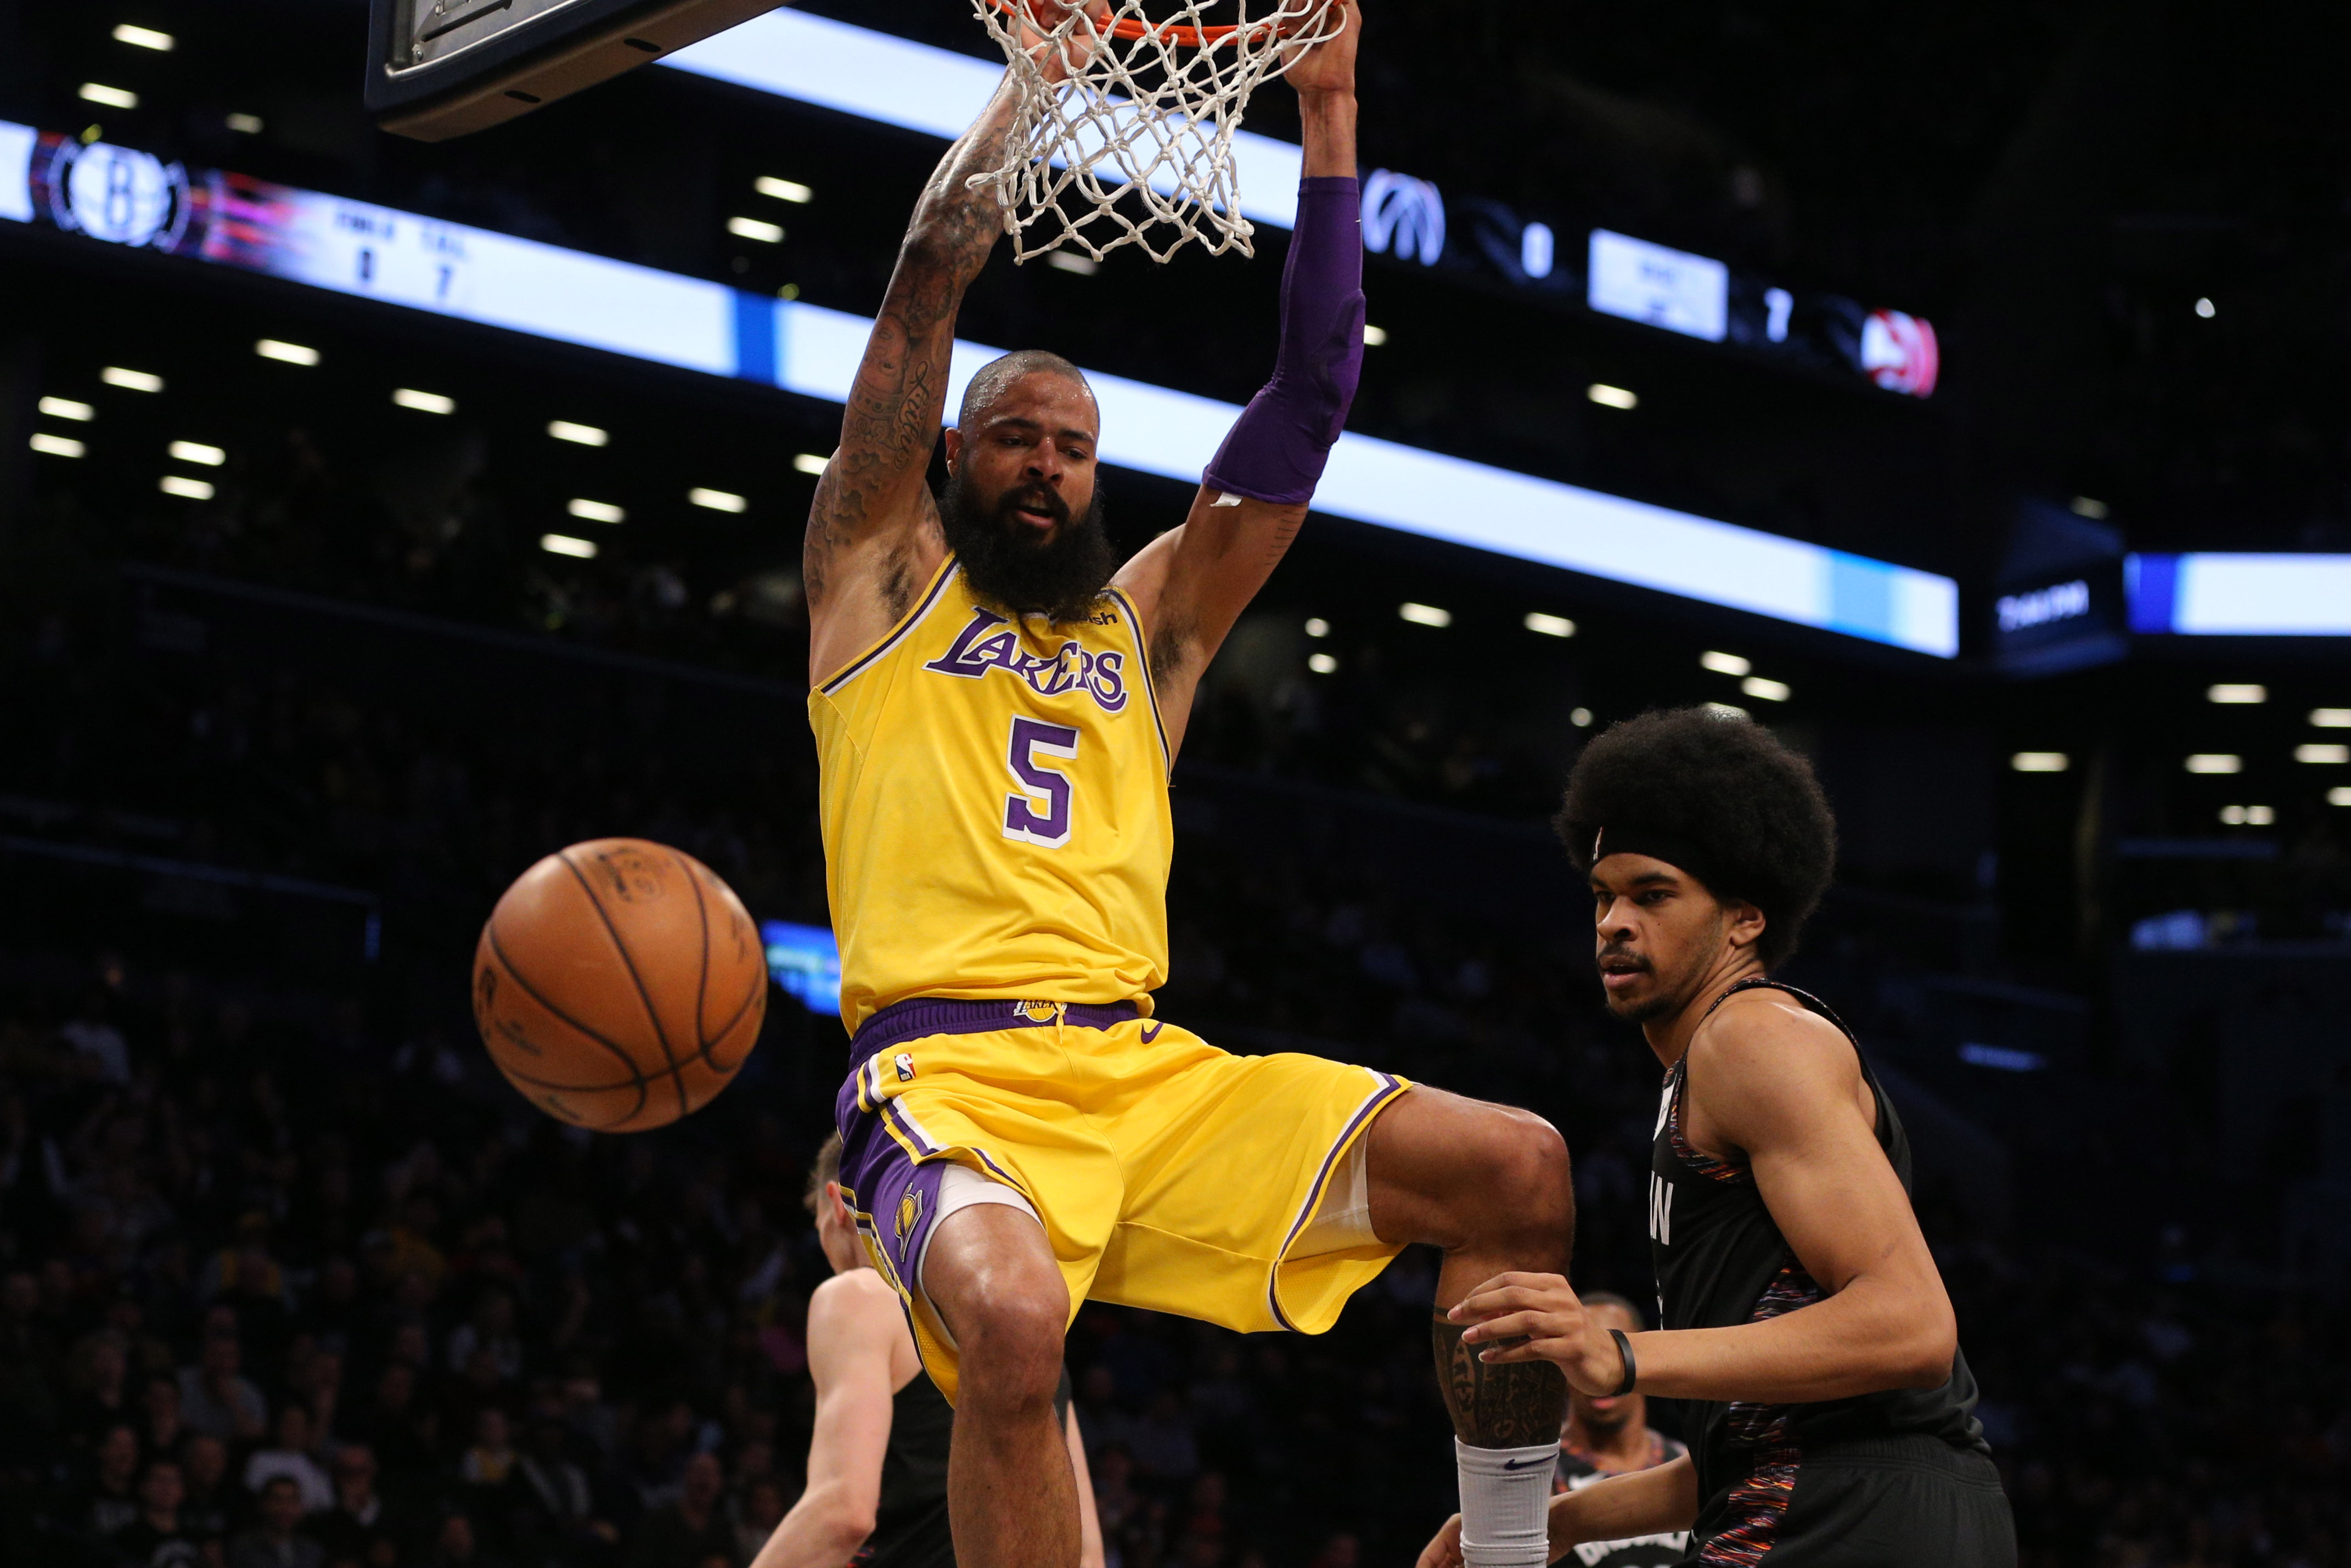 Dec 18, 2018; Brooklyn, NY, USA; Los Angeles Lakers center Tyson Chandler (5) dunks against Brooklyn Nets center Jarrett Allen (31) during the first quarter at Barclays Center.